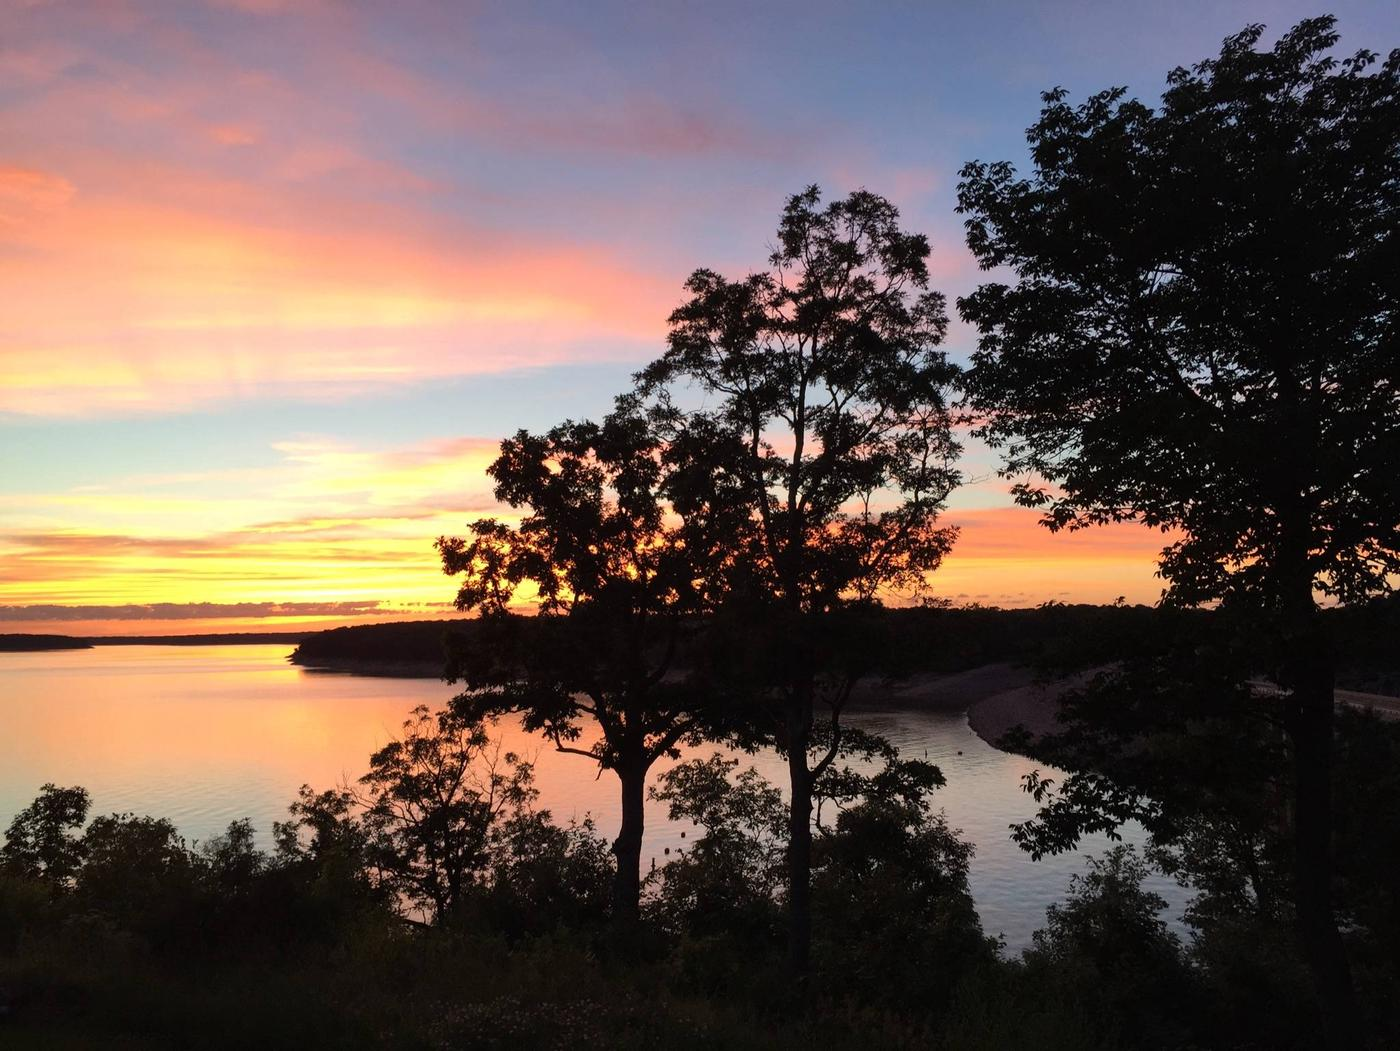 Mark Twain Lake from M. W. Boudreaux Visitor Center